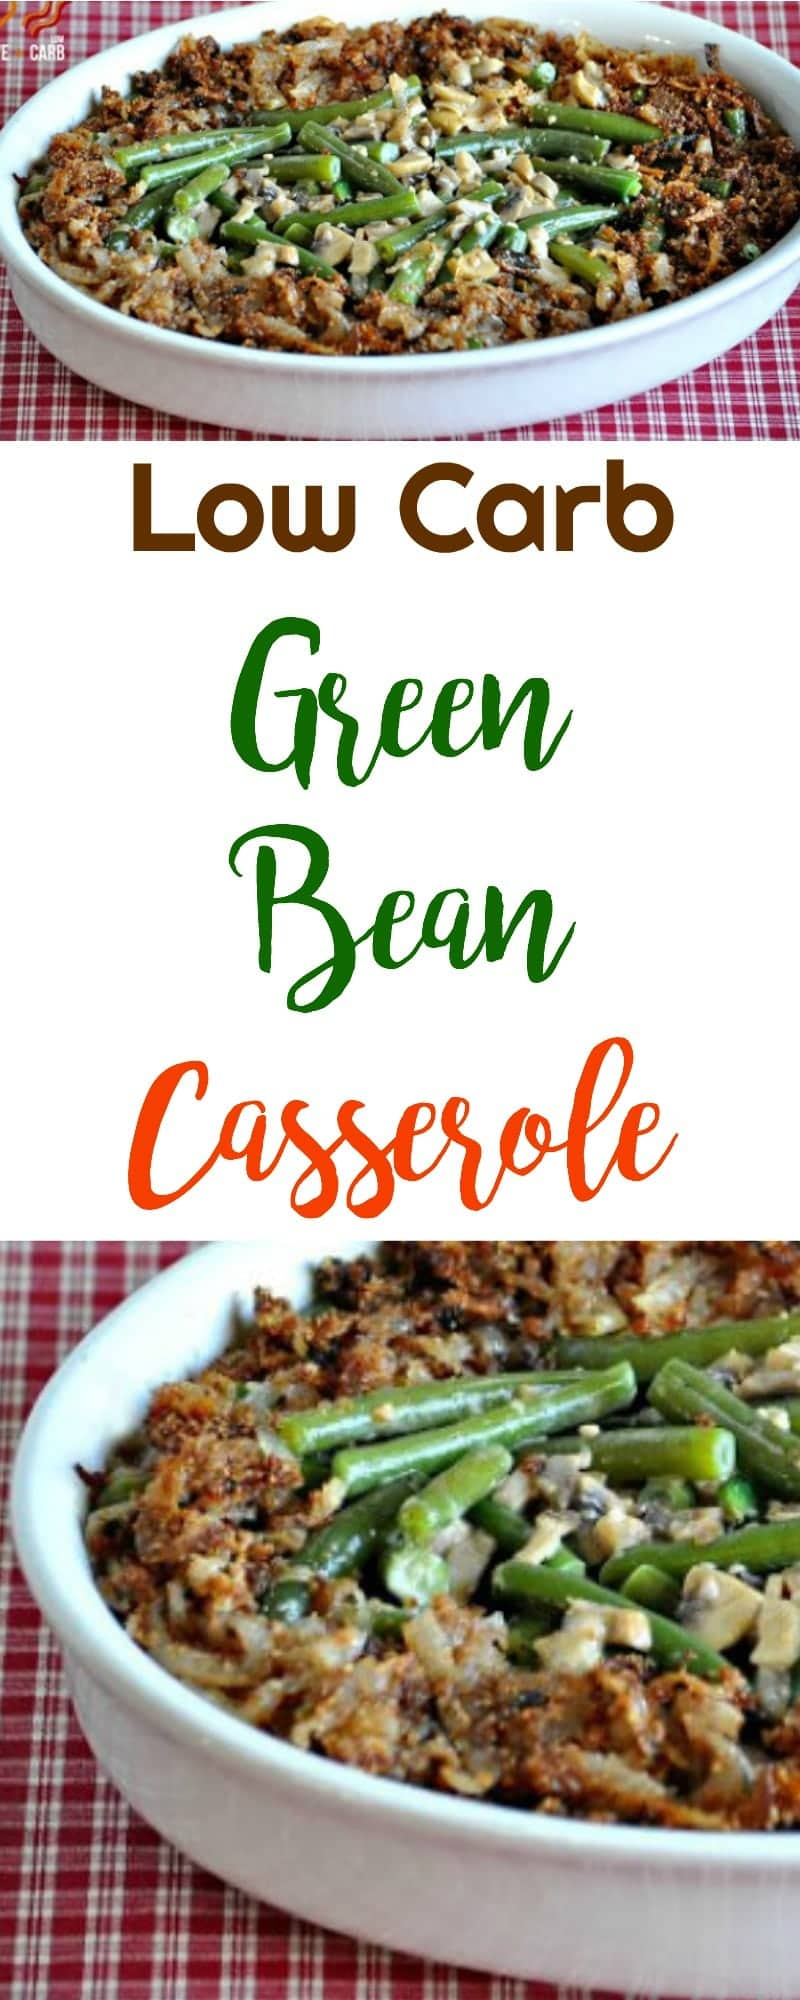 Low Carb Green Bean Casserole | Peace Love and Low Carb #lowcarb #greenbeancasserole #thanksgiving #lowcarbrecipe